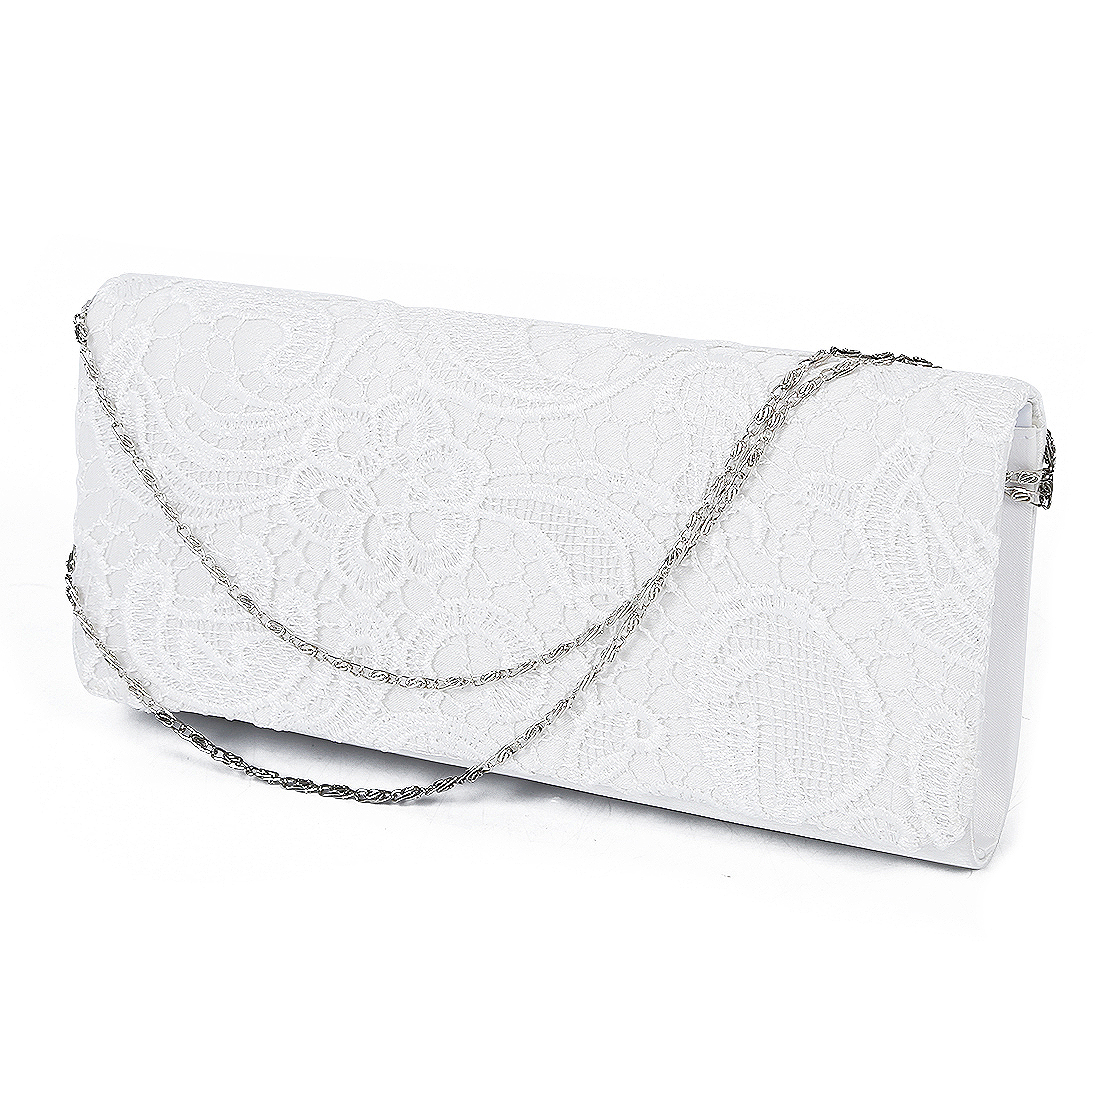 ASDS bag Shoulder wallet pouch Lace Floral Style Satchel clutch Fashion for Women Girl White characteristic floral and butterfly shape lace decorated body jewelry for women